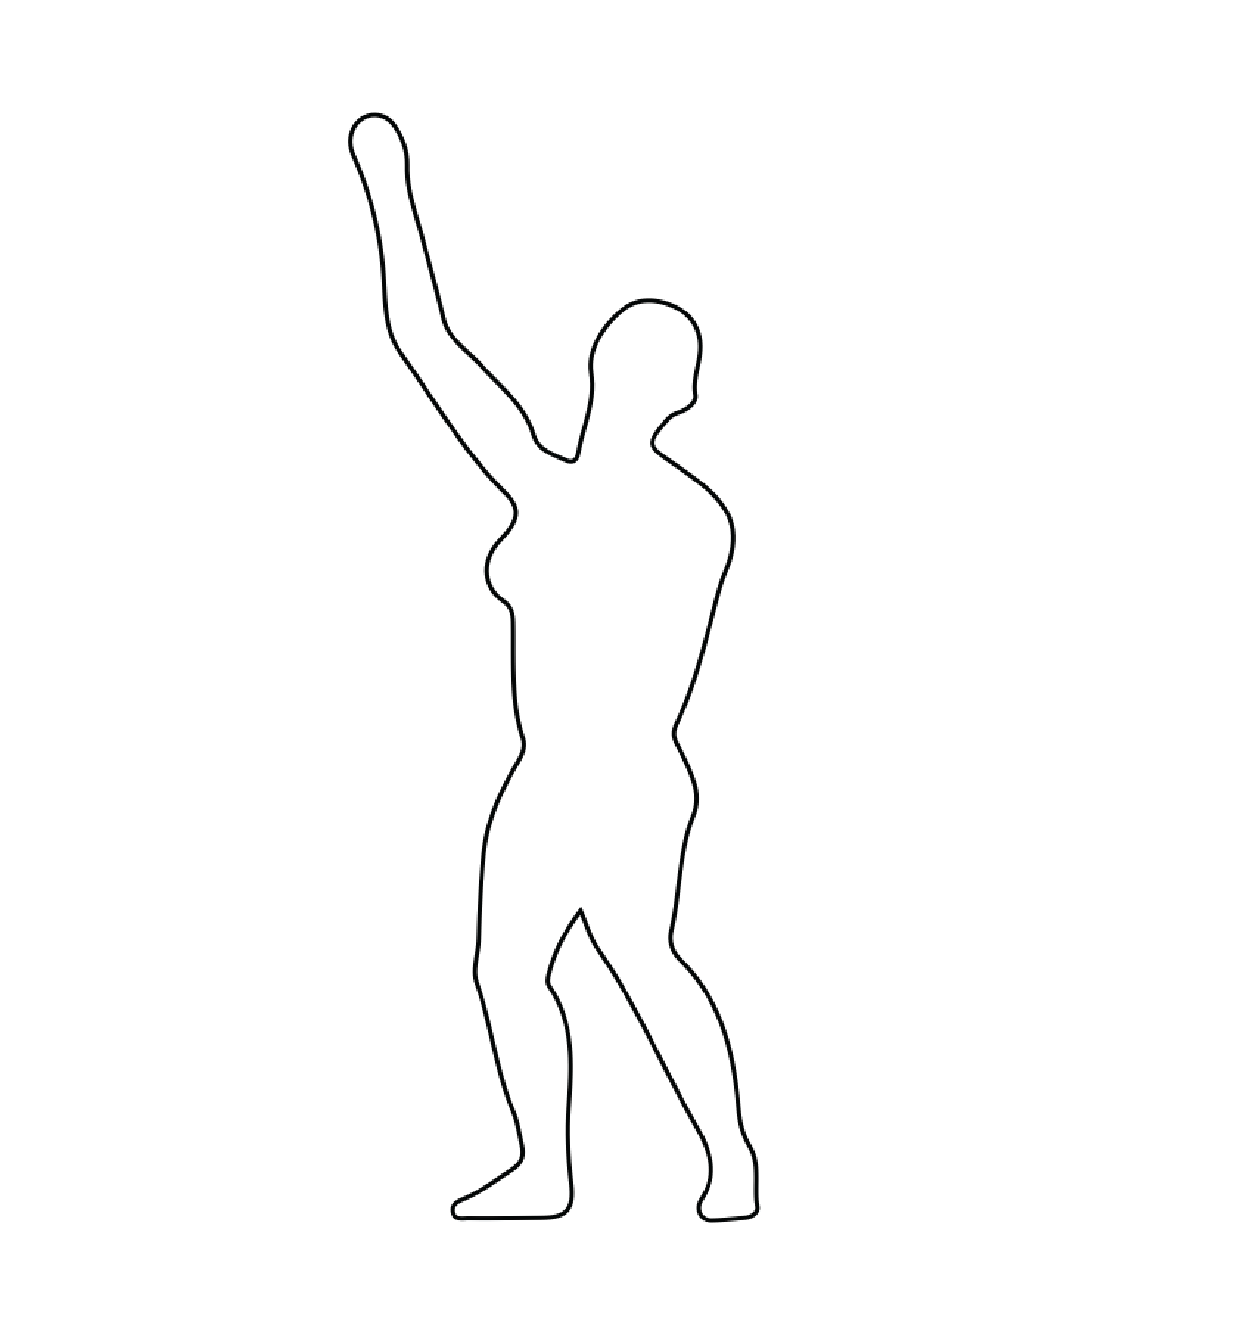 A thin black outline of a dancer  on a white background.